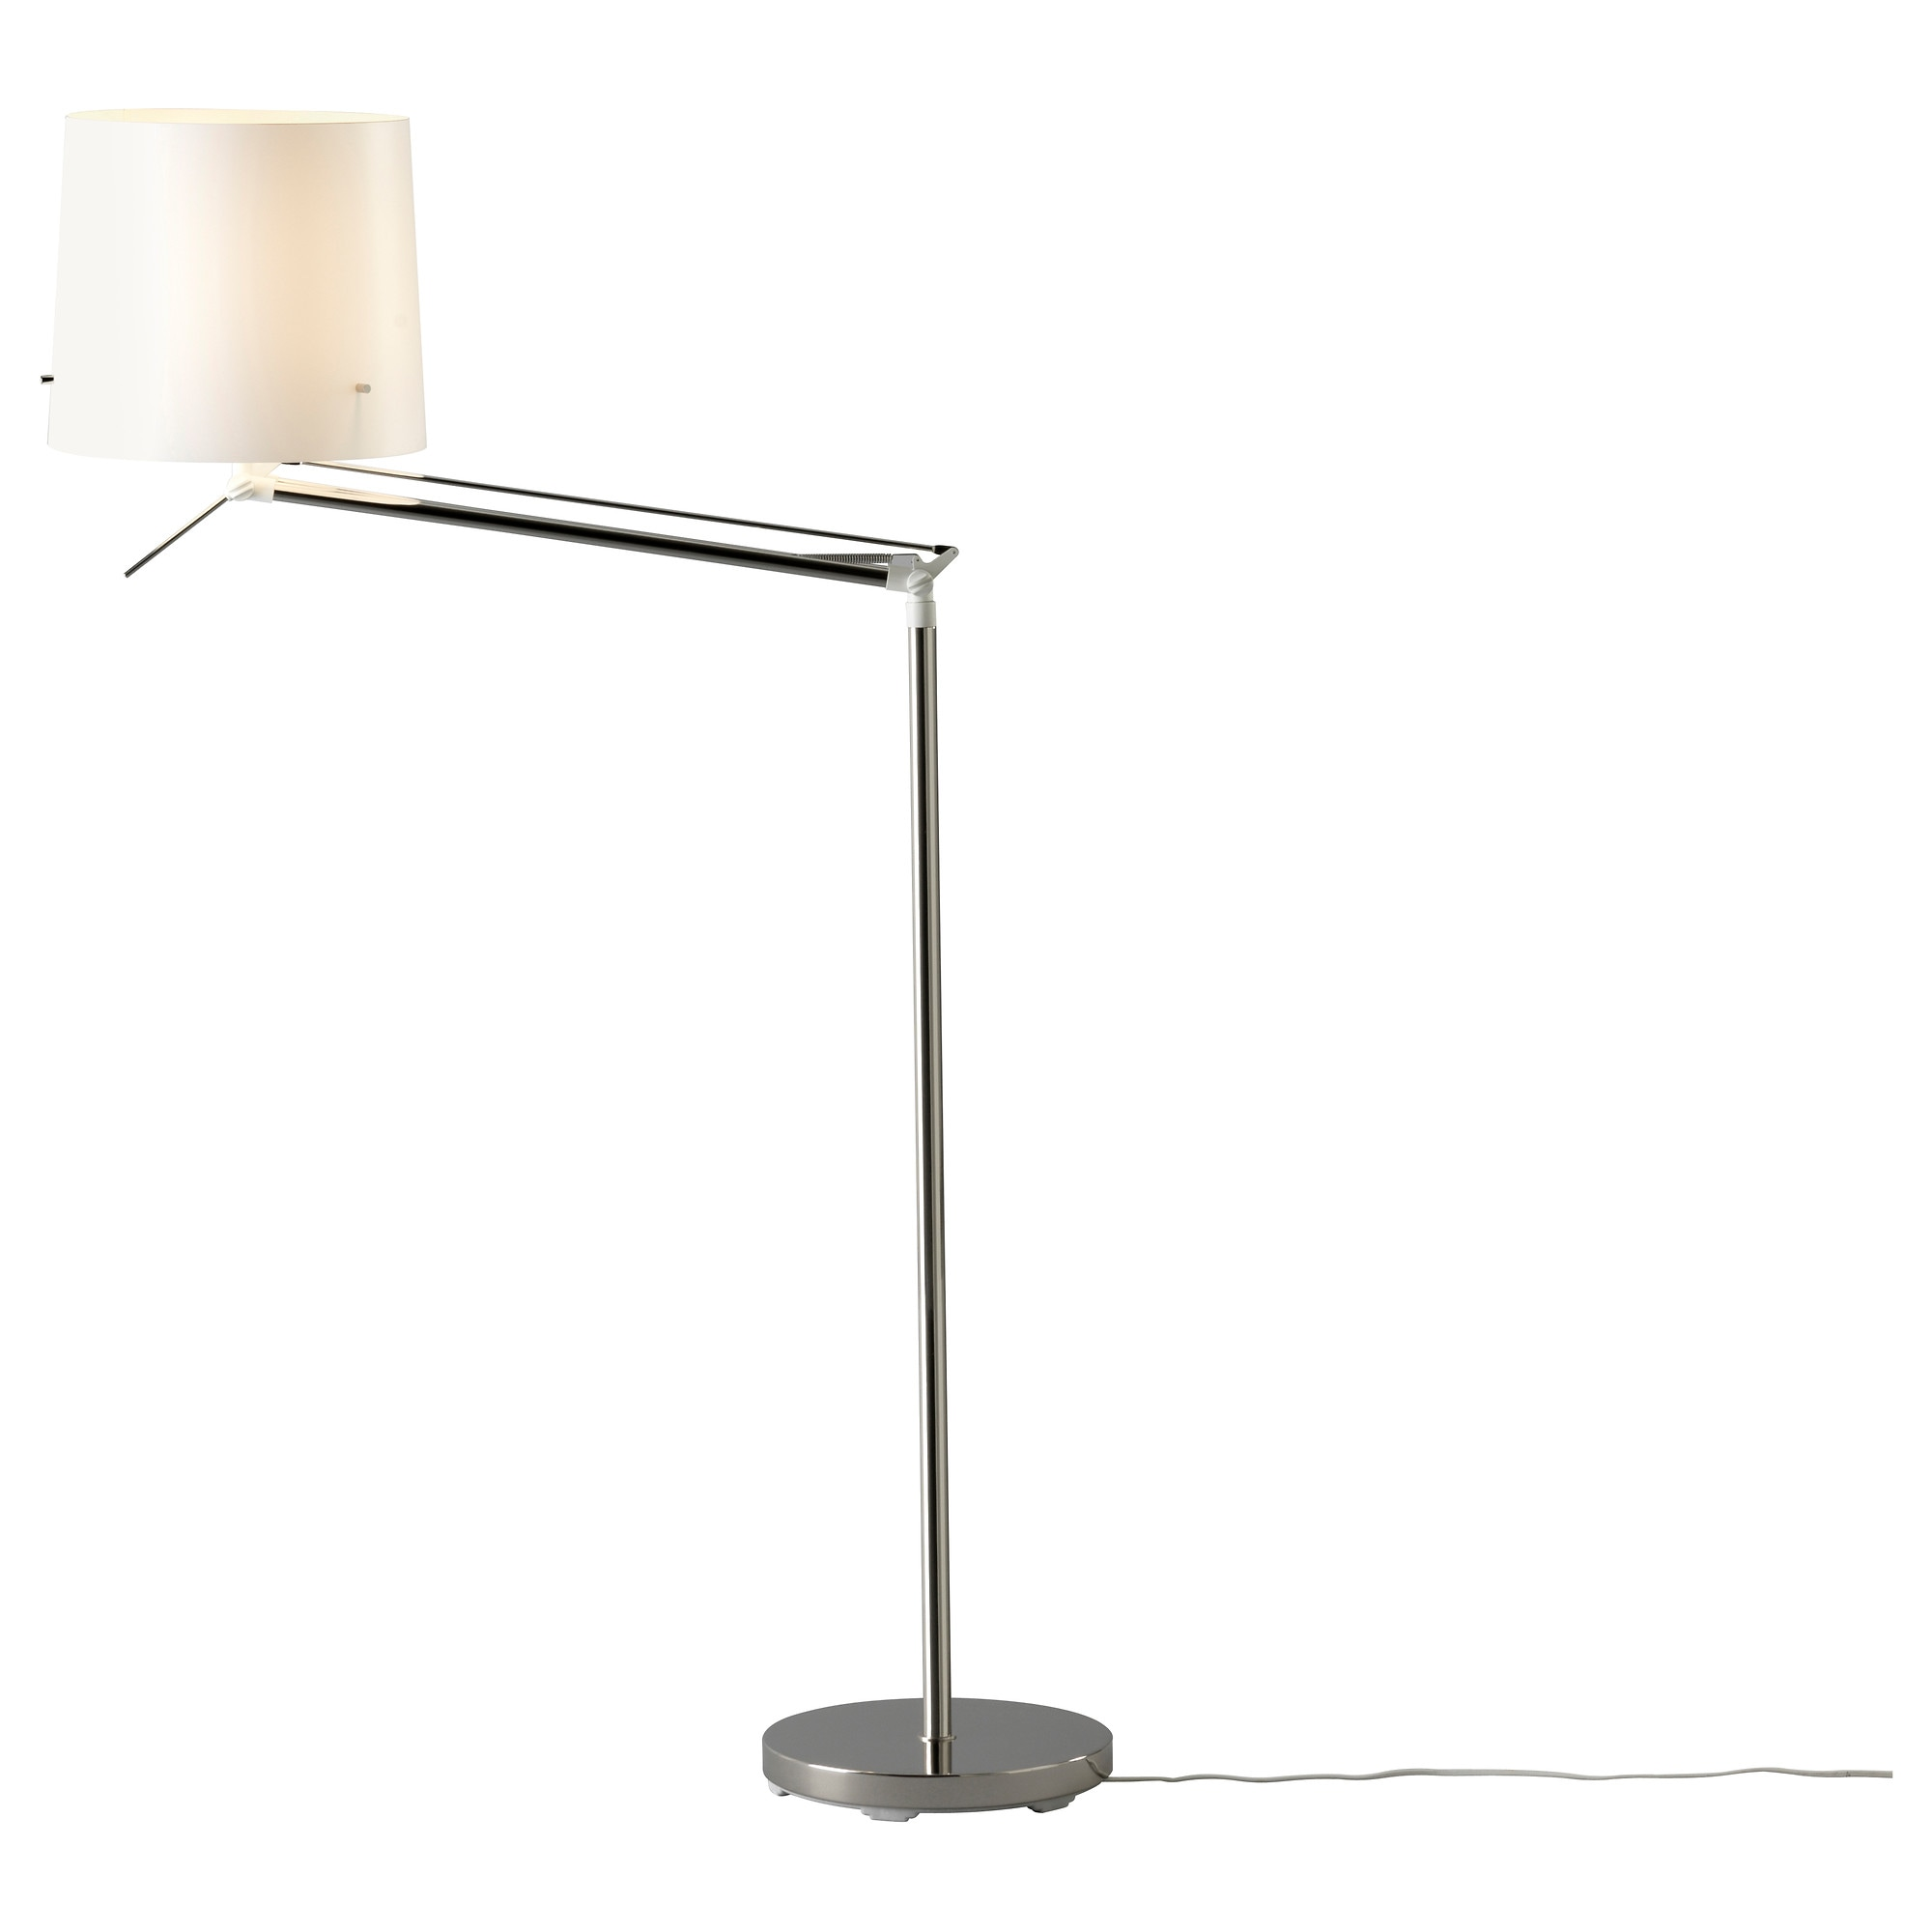 SAMTID Floor/reading lamp - IKEA